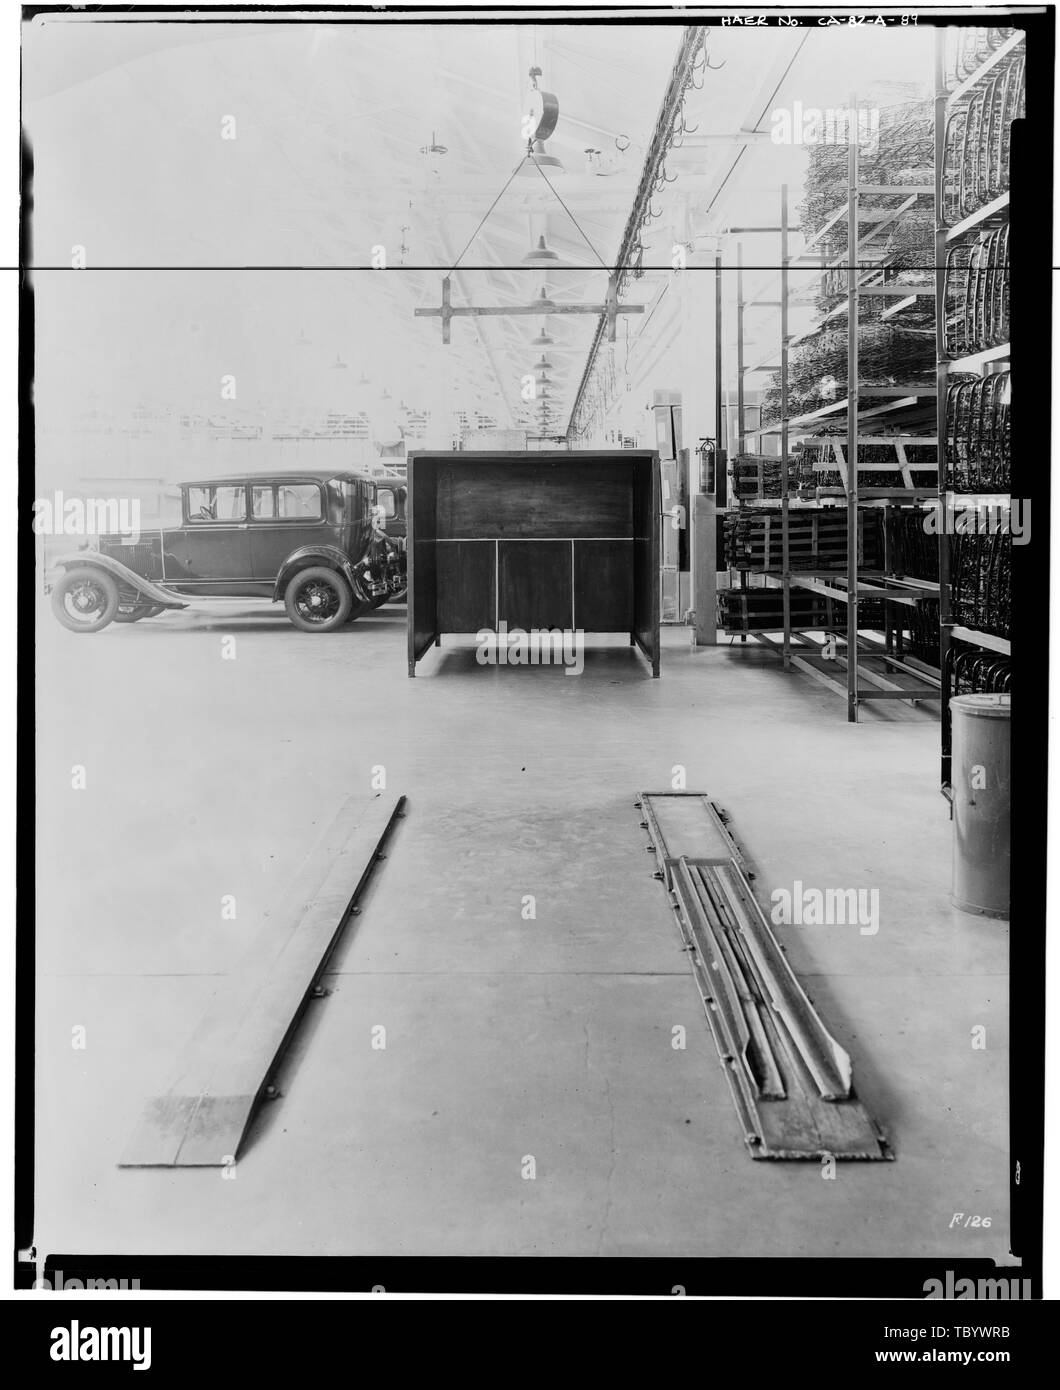 Neg. Nr. F126, Jul 21, 1931 INTERIORASSEMBLY GEBÄUDE, ANZEIGEN SCHEINWERFER PRÜFUNG stand Ford Motor Company Long Beach Montagewerk, Assembly Building, 700 Henry Ford Avenue, Long Beach, Los Angeles County, CA Stockbild